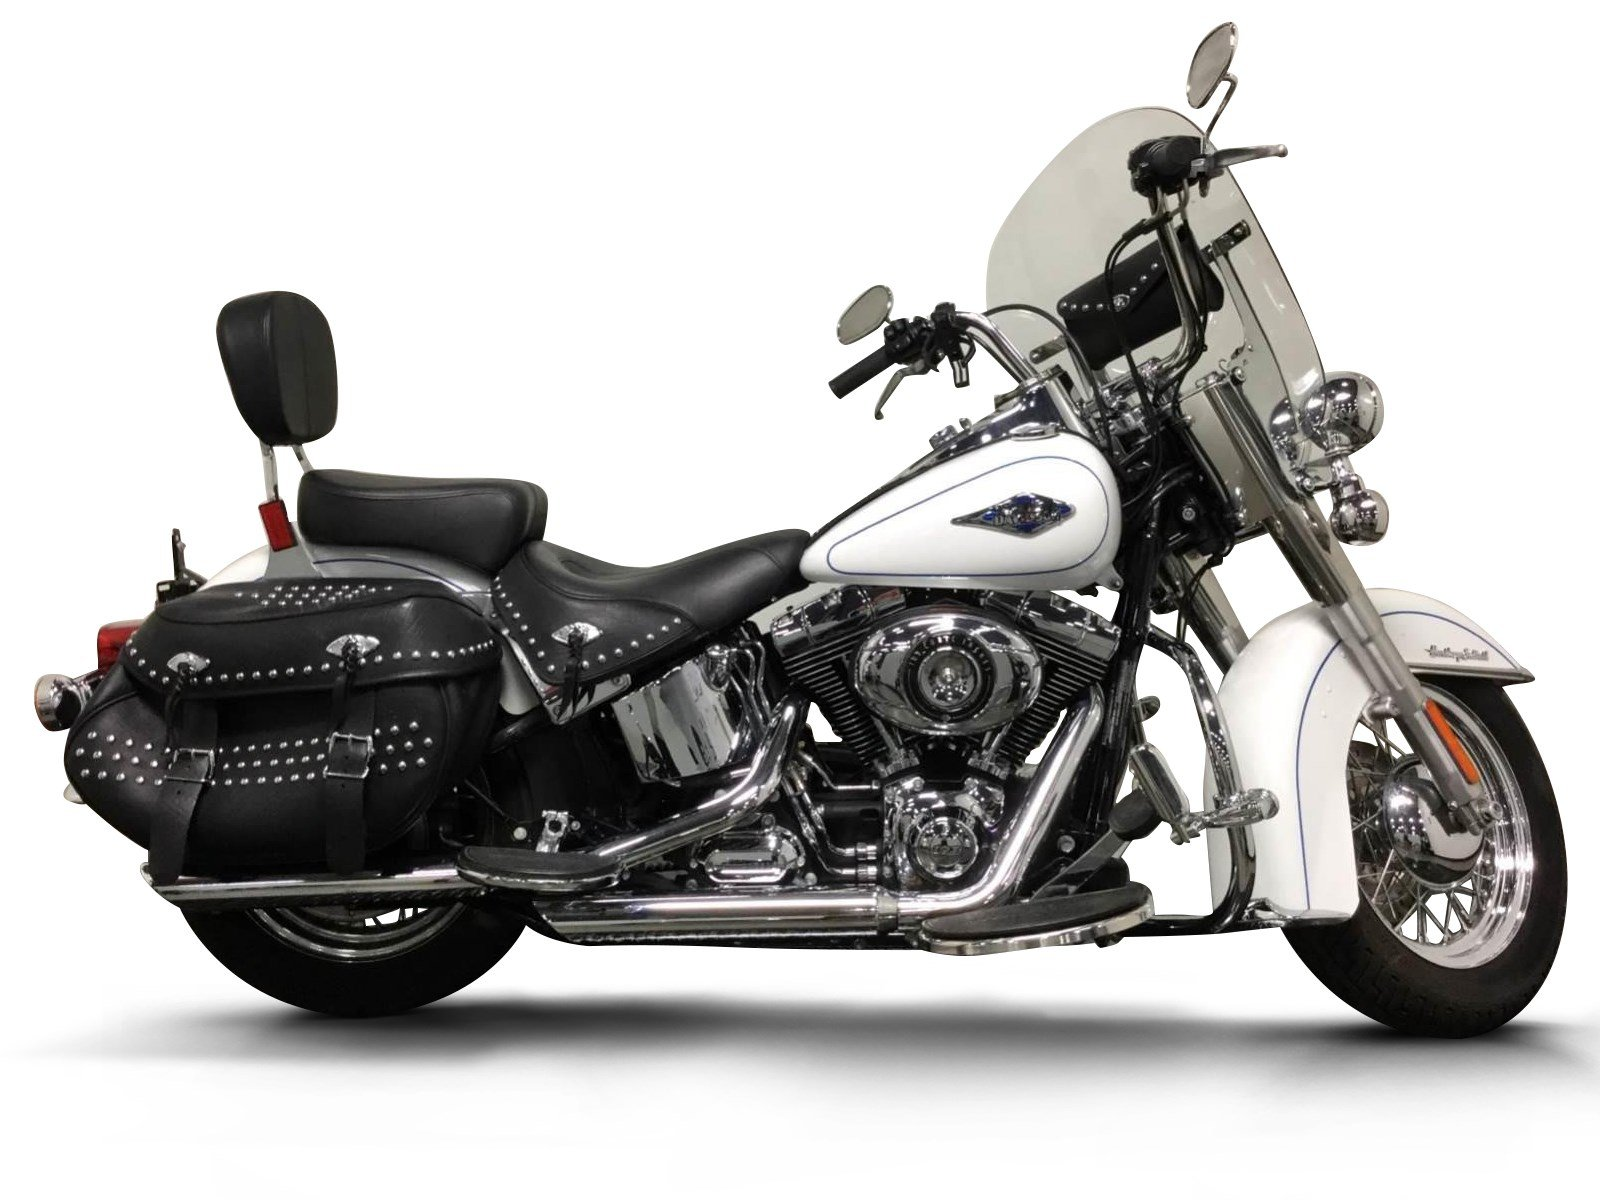 2013 HARLEY-DAVIDSON FLSTC HERITAGE SOFTAIL CLASSIC For Sale - 10788 | Free  Shipping